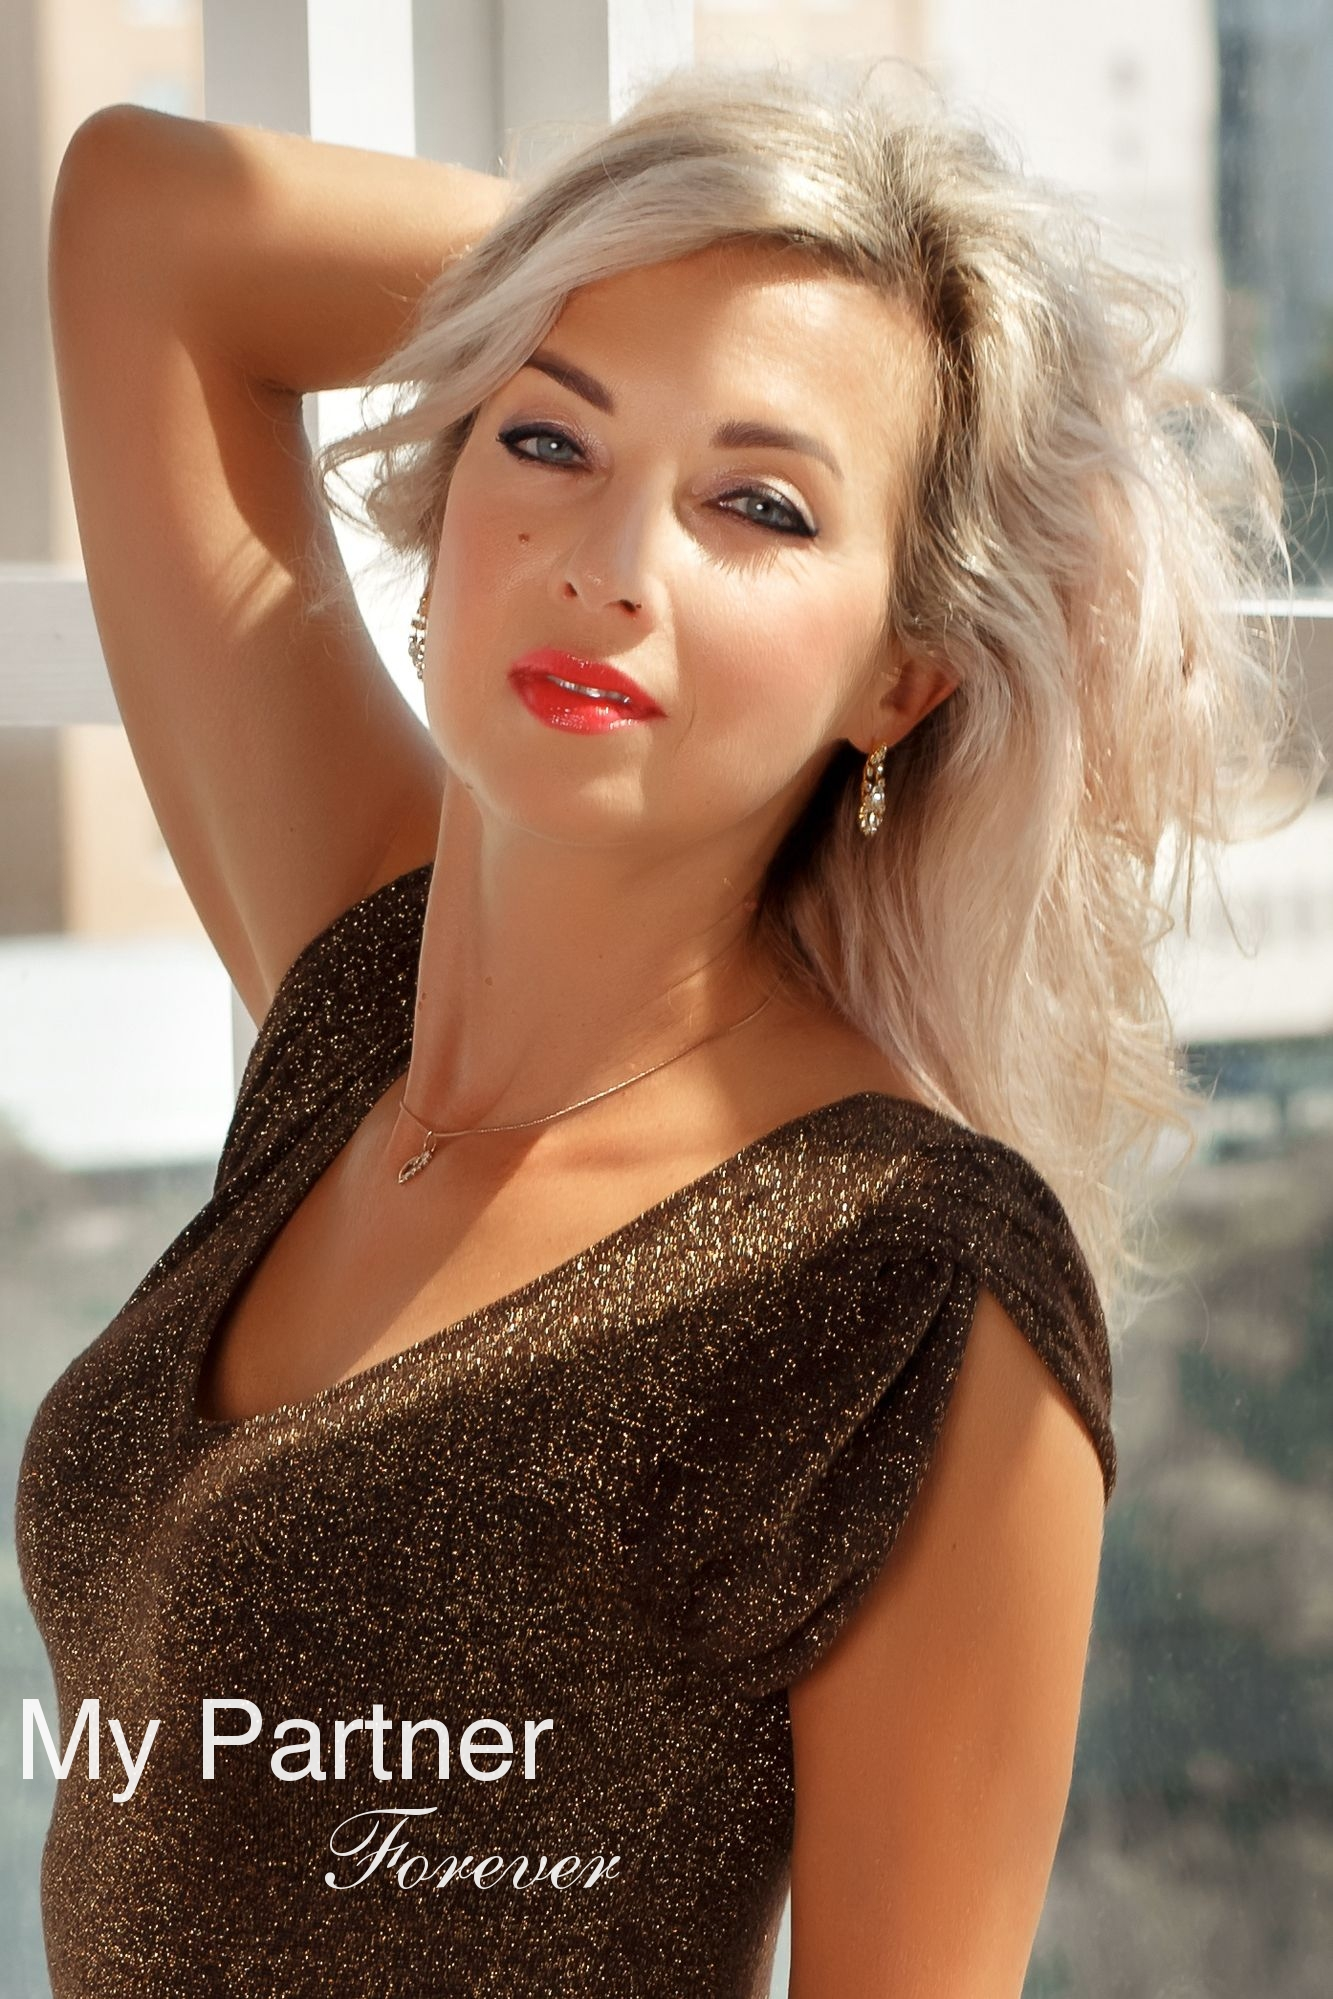 Beautiful Ukrainian Girl Tatiyana from Dniepropetrovsk, Ukraine